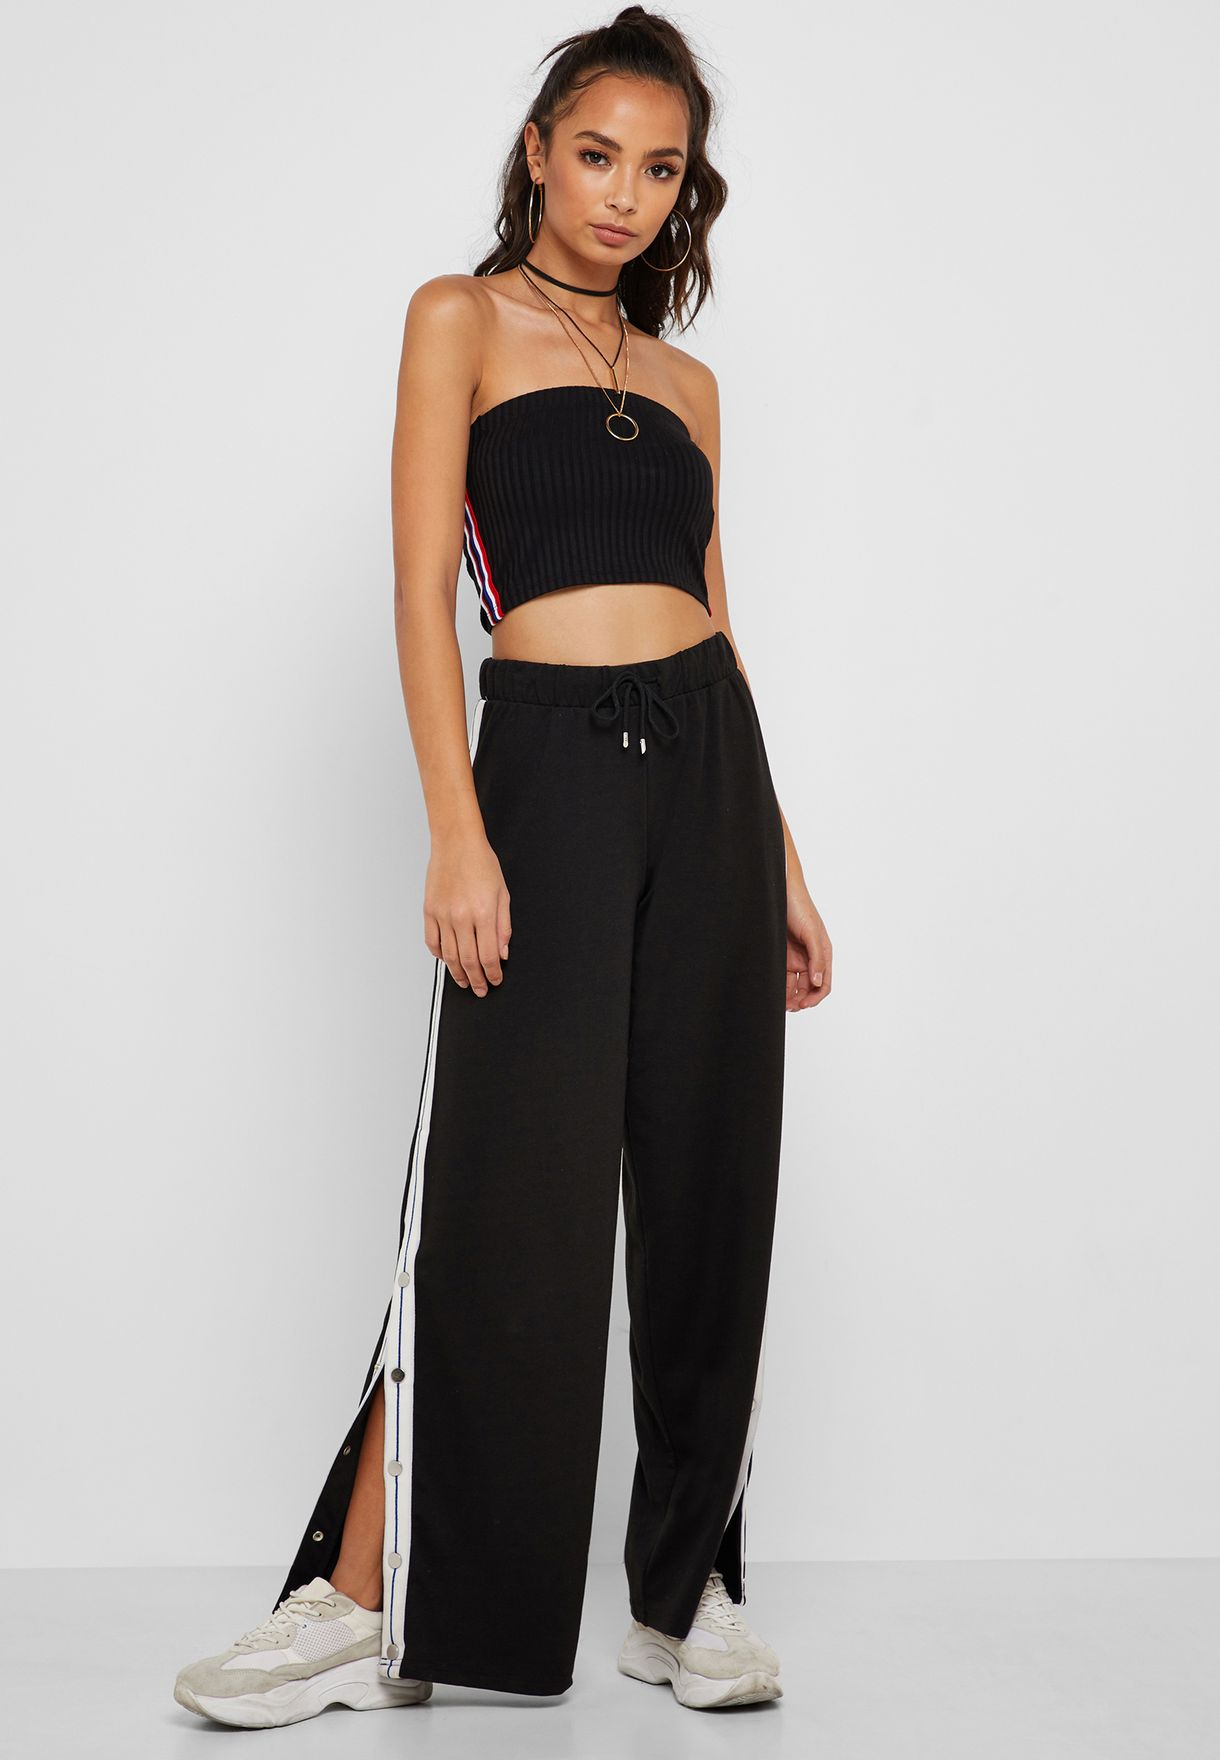 adf8ceed590 Shop Forever 21 black Side Striped Bandeau Crop Top 323350 for Women ...